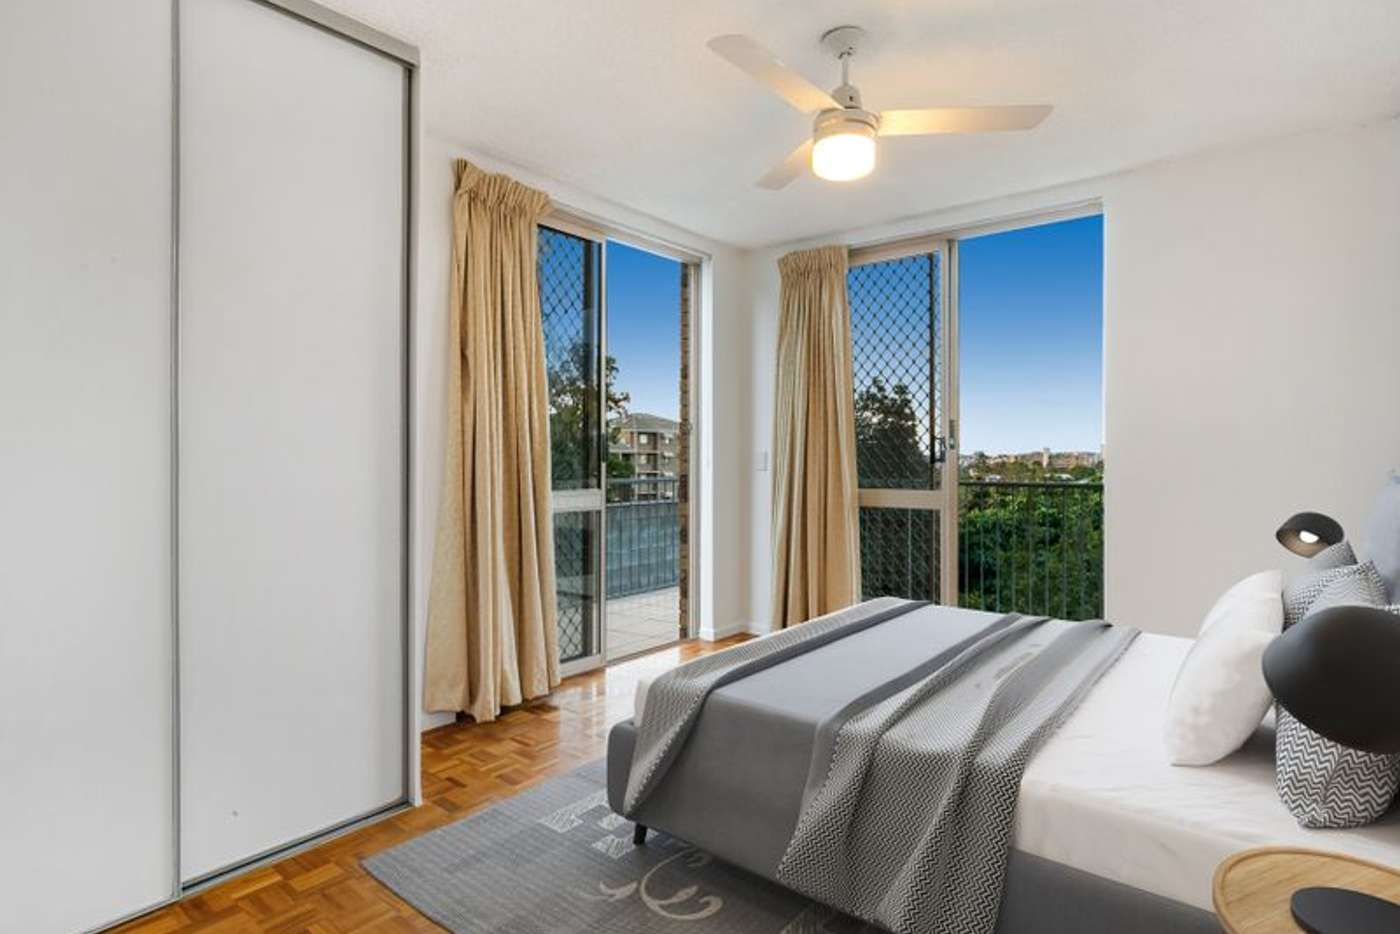 Sixth view of Homely unit listing, 8/298 Swann Road, St Lucia QLD 4067